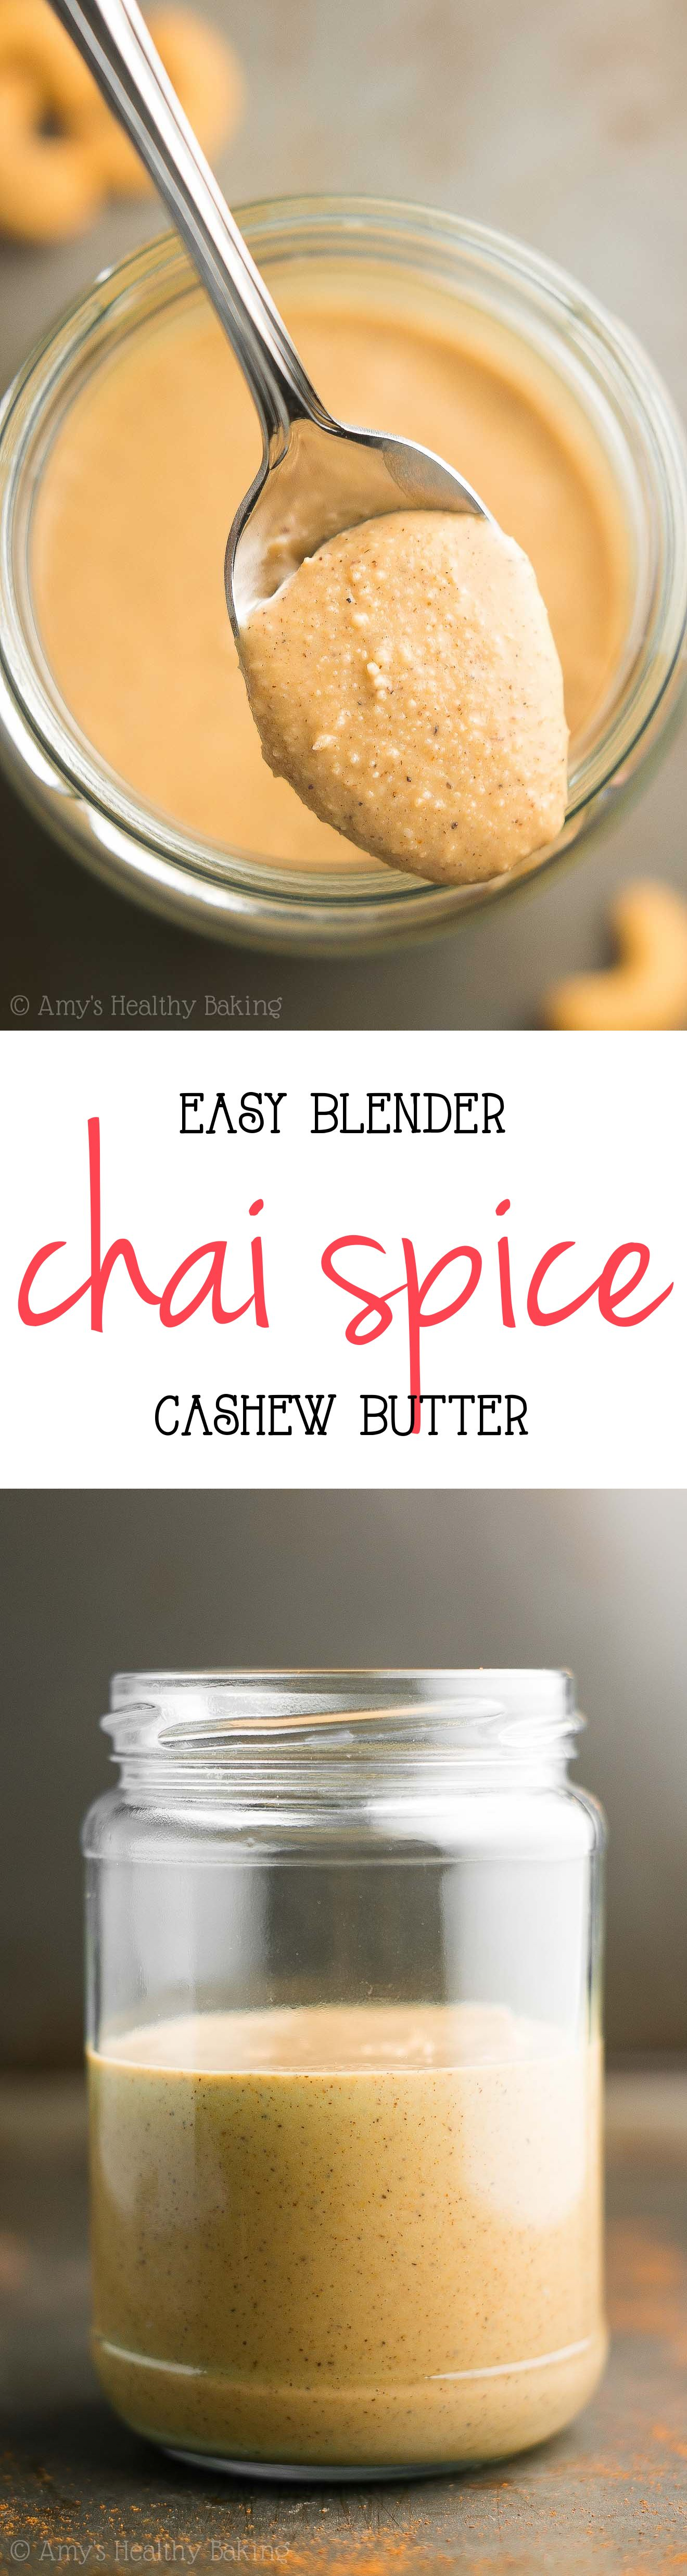 Easy Blender Chai Spice Cashew Butter -- you just need 3 ingredients & 10 minutes! This tastes SO much better than store-bought for half the price!